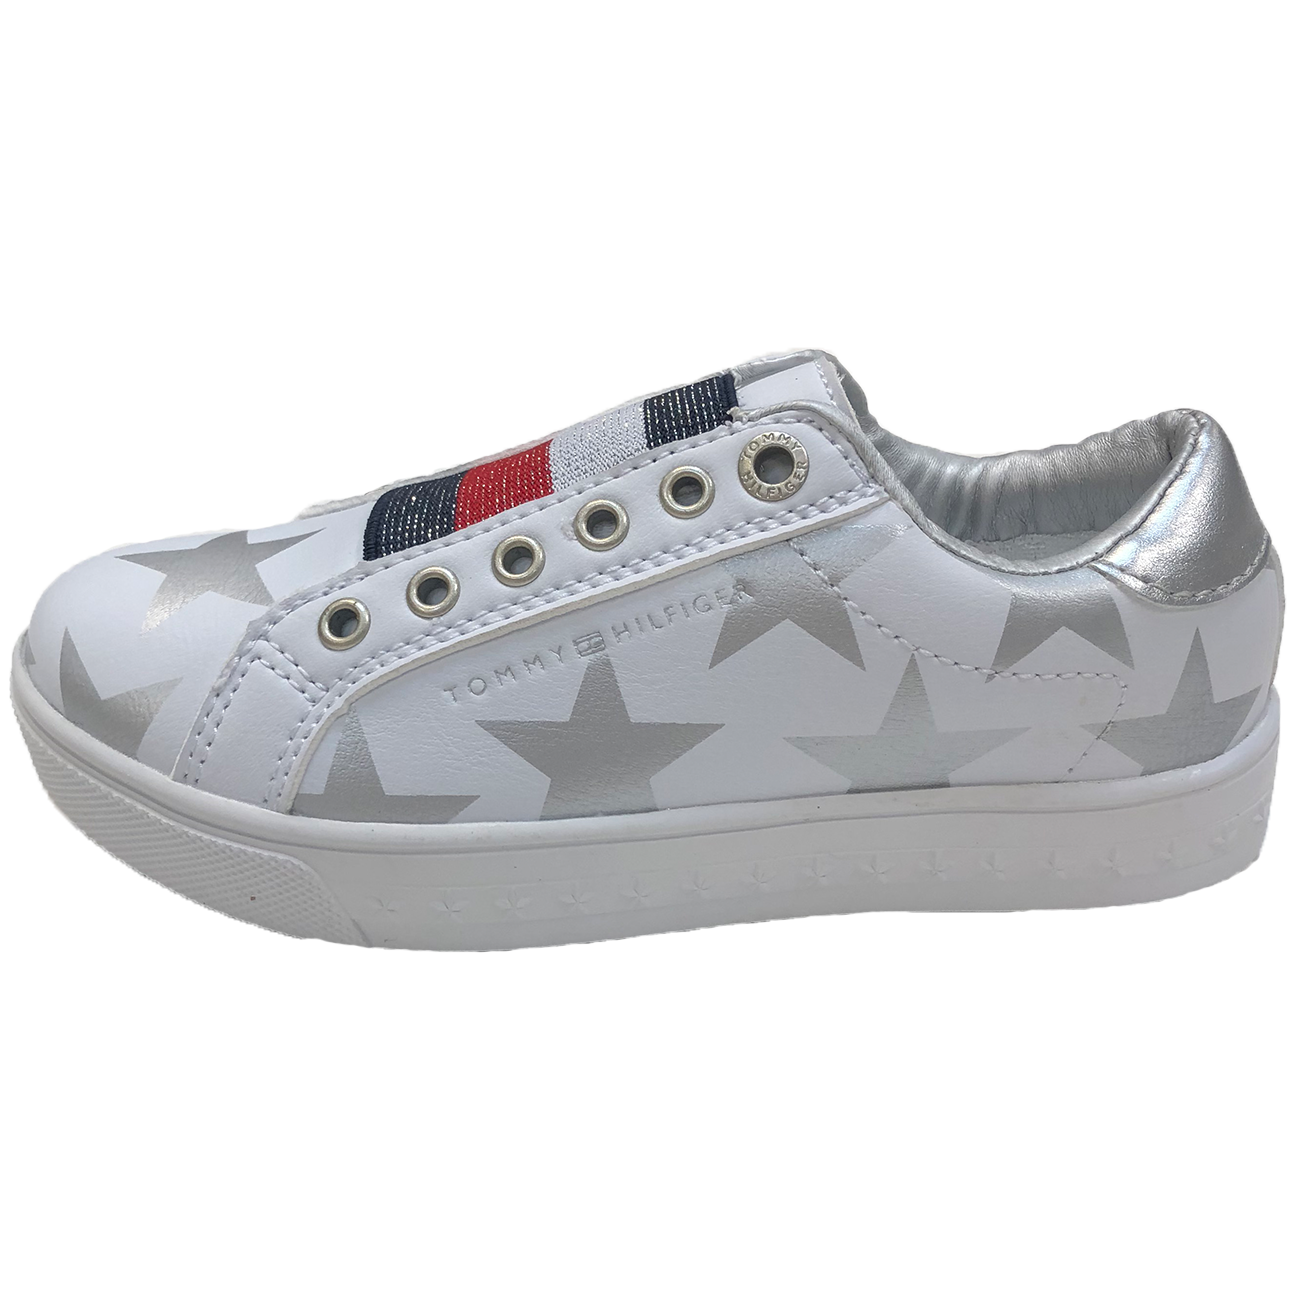 Tommy Hilfiger Scarpa Stampa Stelle Velcro Sneakers Bianco Arge 644b37a7b88